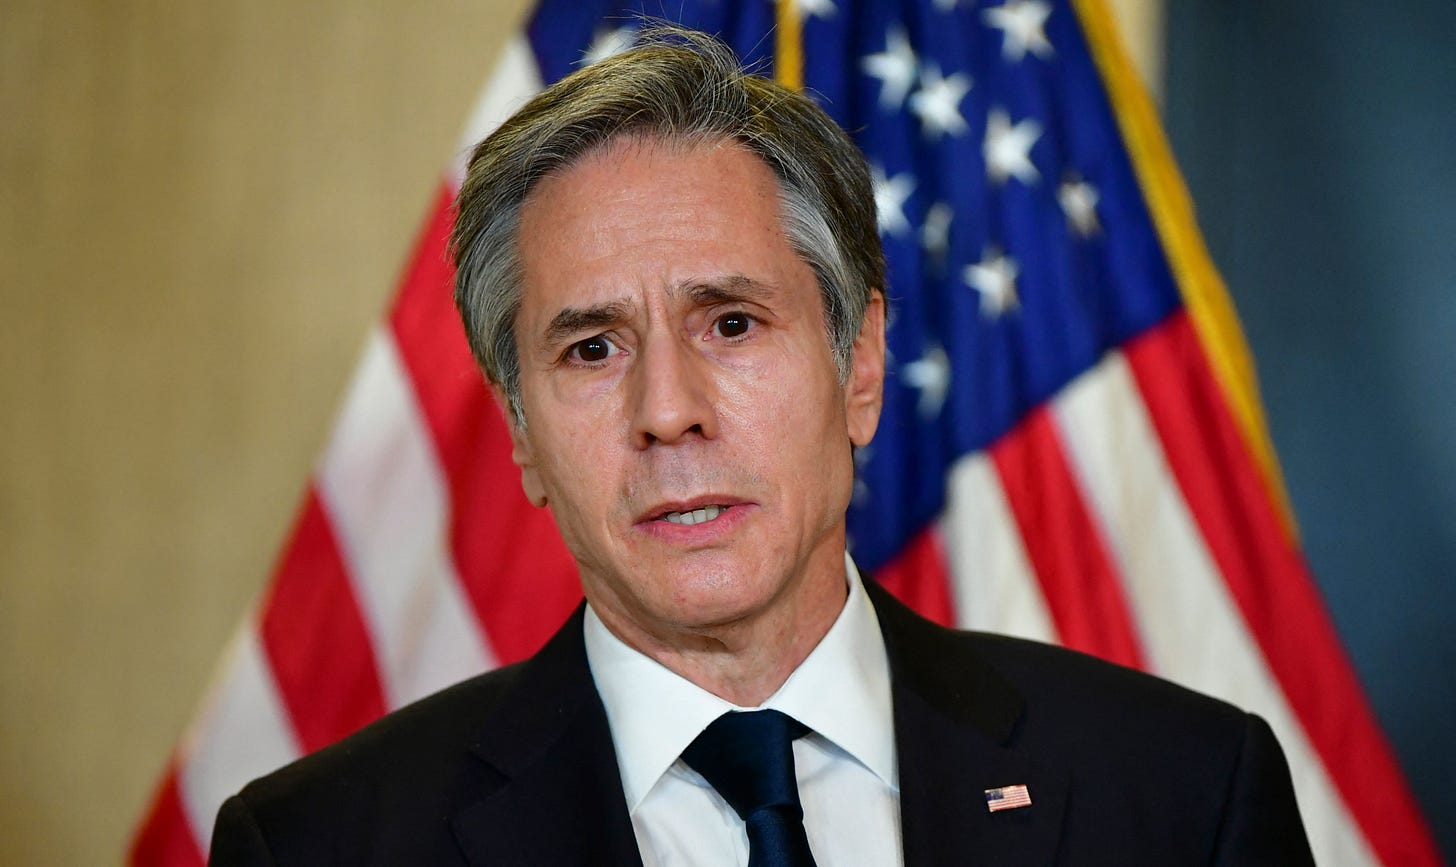 US Secretary of State Antony Blinken addresses the media following the closed-door morning talks between the United States and China upon conclusion of their two-day meetings in Anchorage, Alaska on March 19, 2021. (Photo by Frederic J. BROWN / POOL / AFP) (Photo by FREDERIC J. BROWN/POOL/AFP via Getty Images)